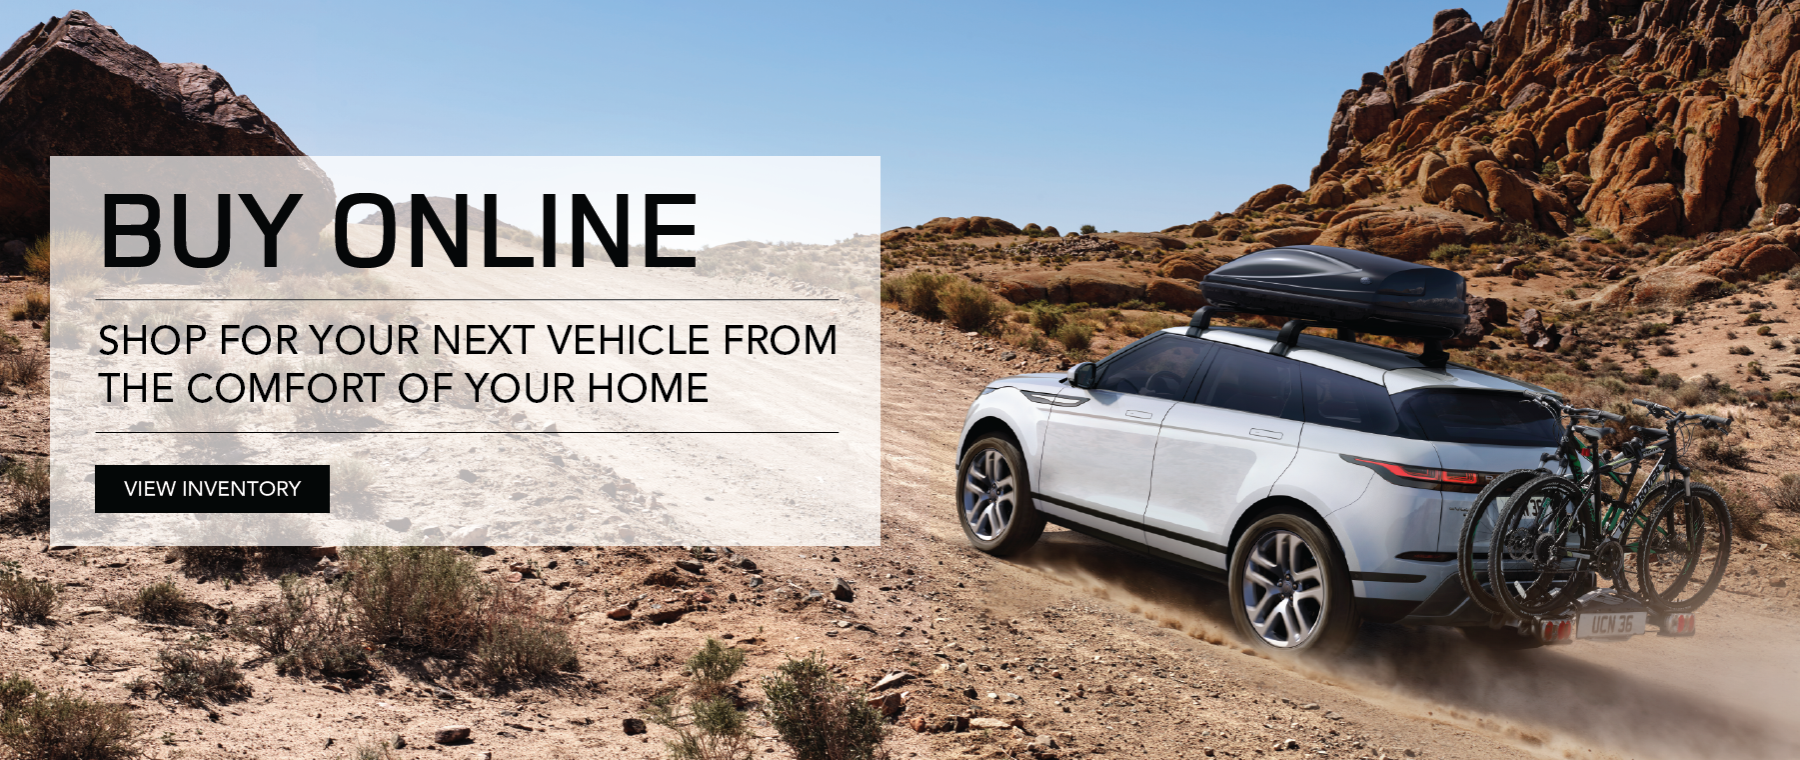 White 2020 Range Rover Evoque on uphill dirt road with bike rack. Buy online - purchase your next vehicle from the comfort of your home. Click to view inventory.